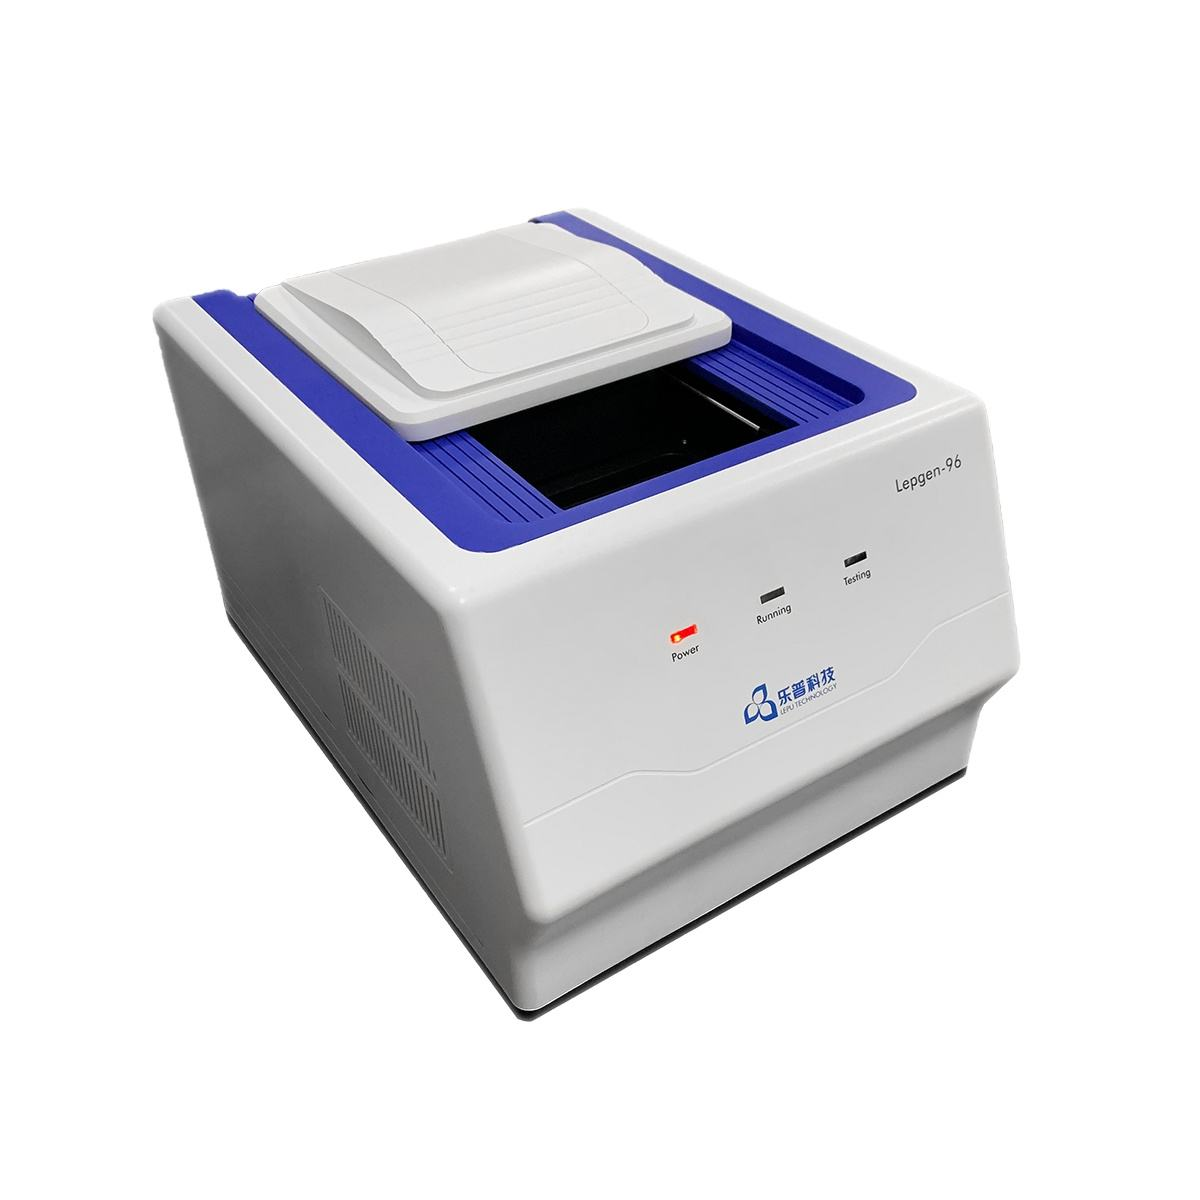 Lepu RT- PCR with qPCR function for DNA or RNA analysis as pcr thermocycler